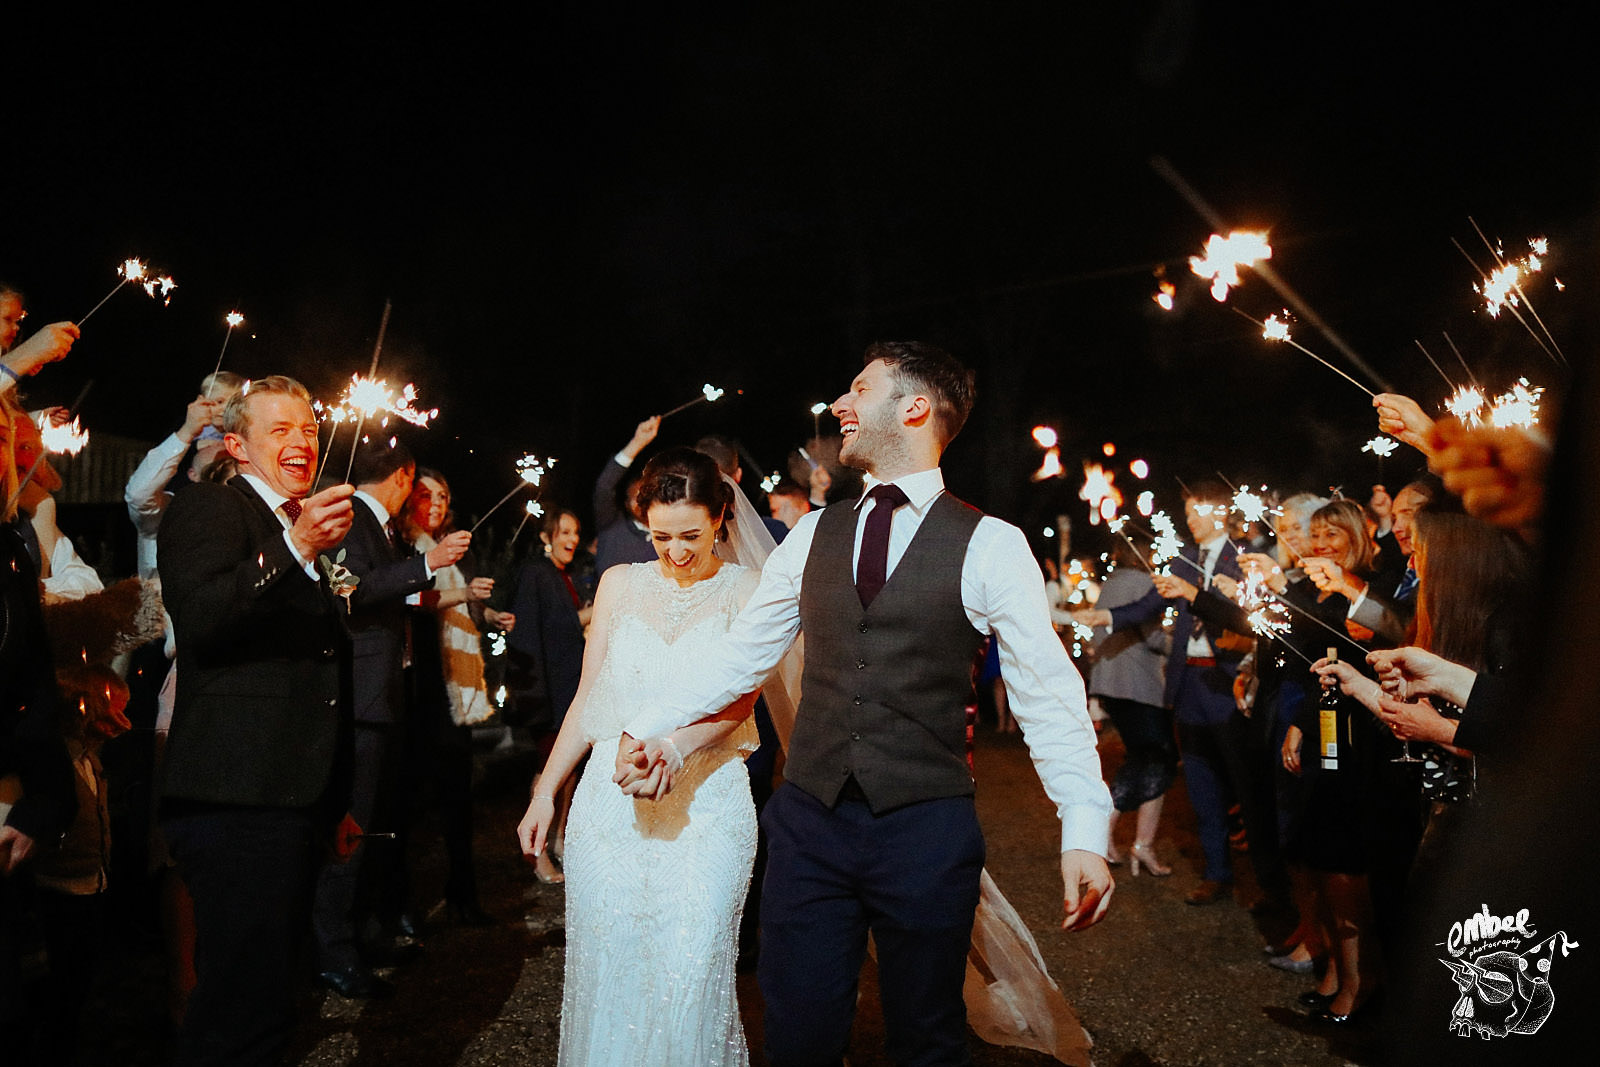 guest surround bride and groom with sparklers at wyresdale park